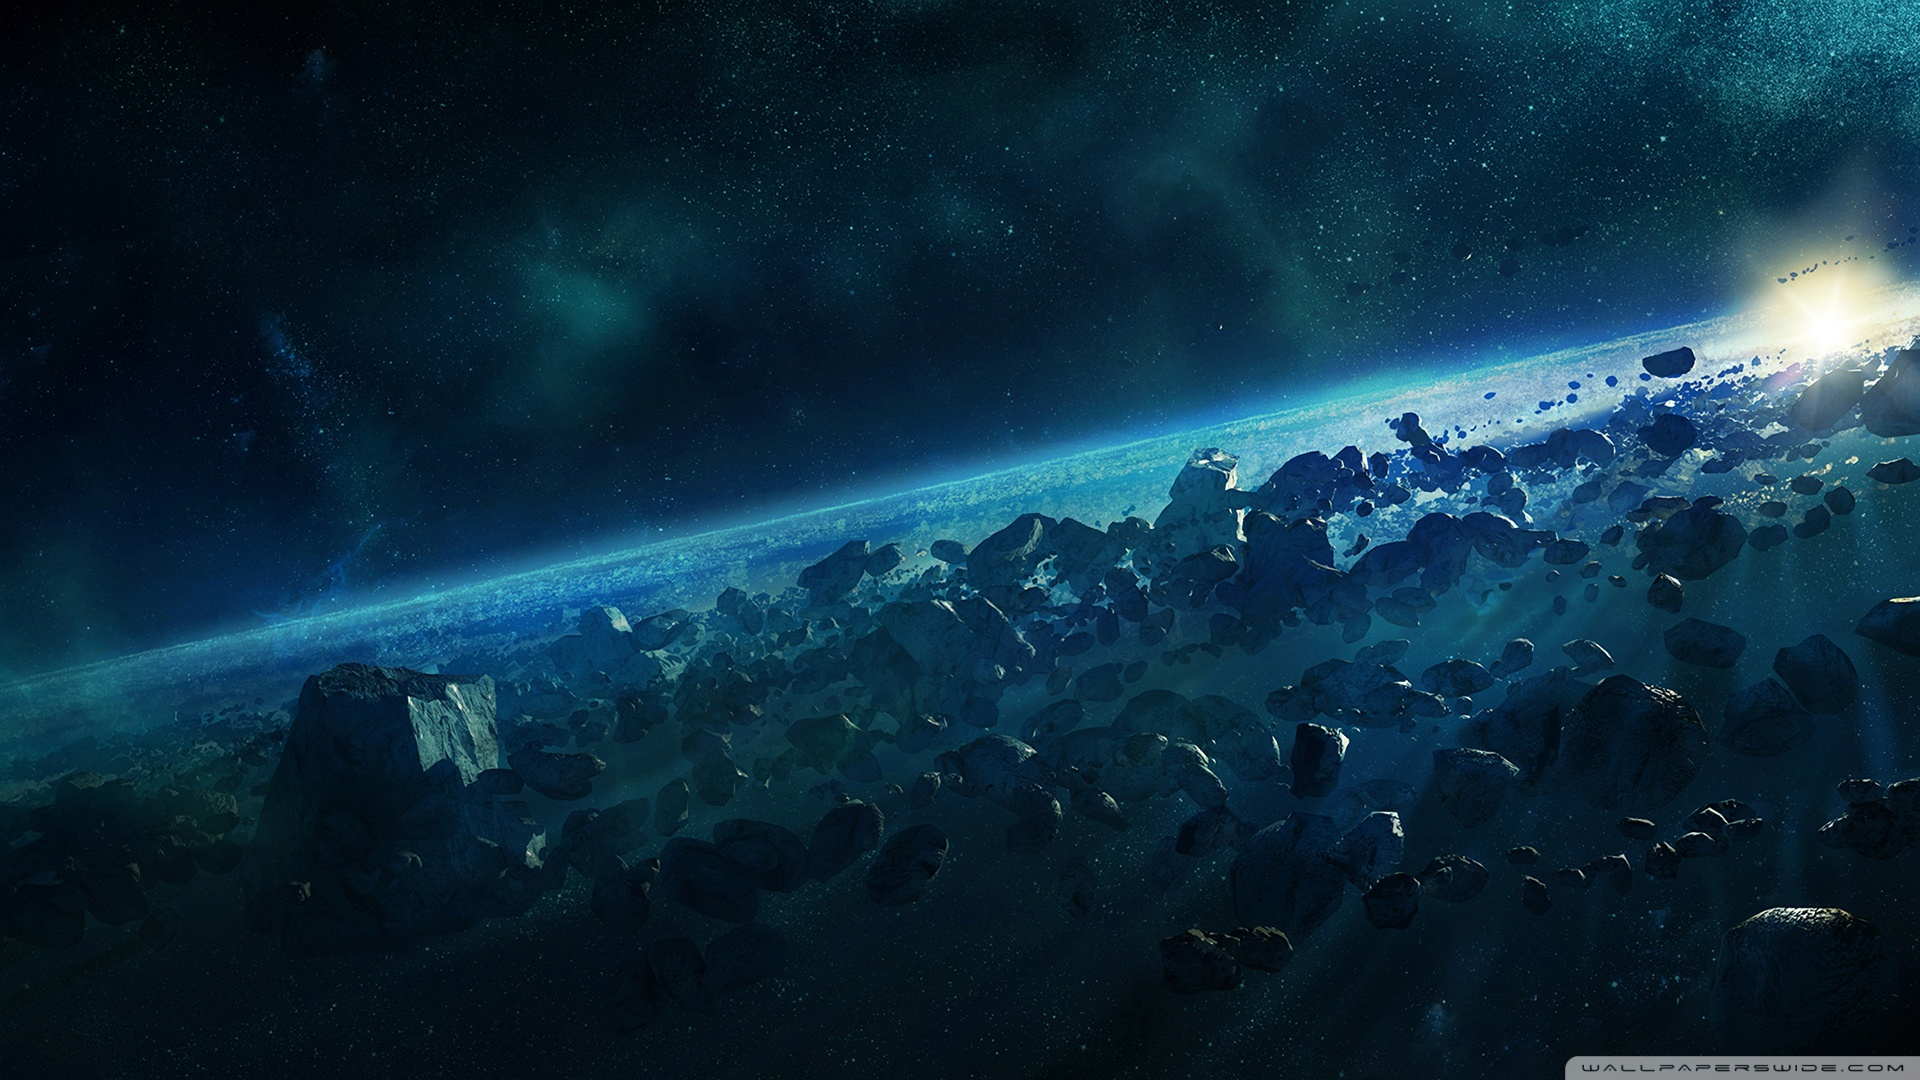 1920x1080 - Asteroid Wallpapers 4